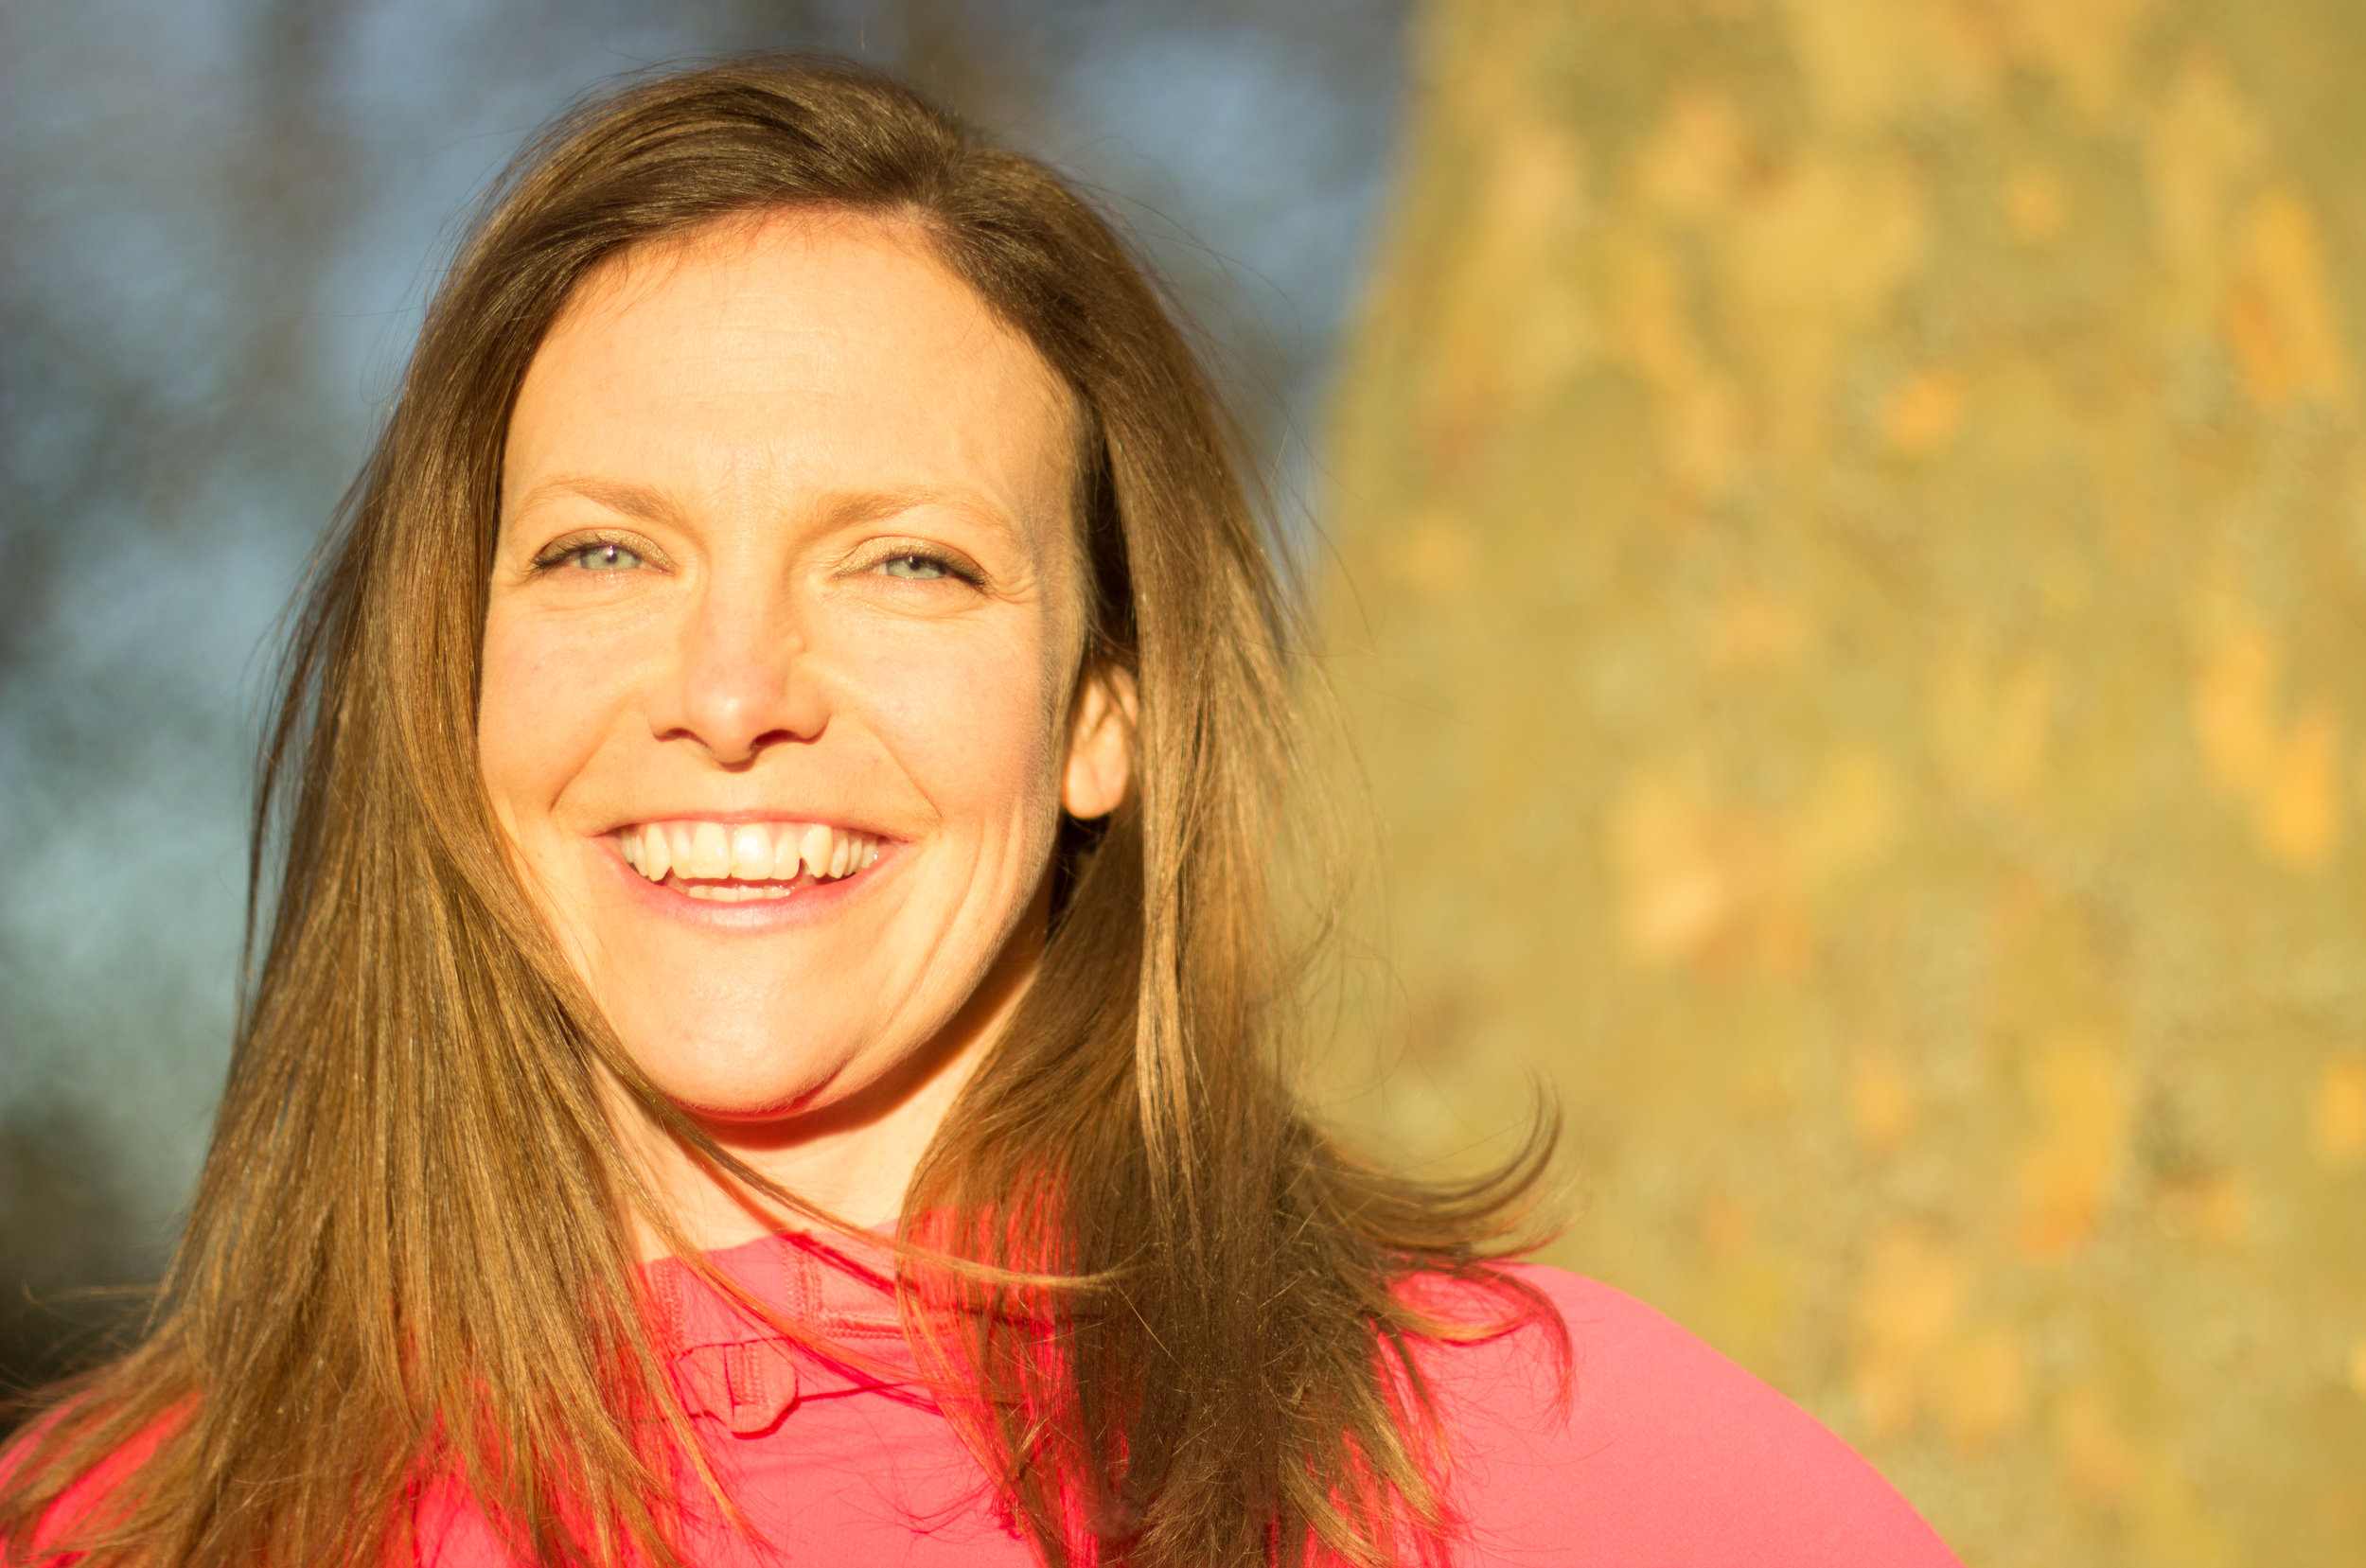 Sandy Rowe Aspyr Director, Personal Trainer, Sports Masseuse and Nutritionist